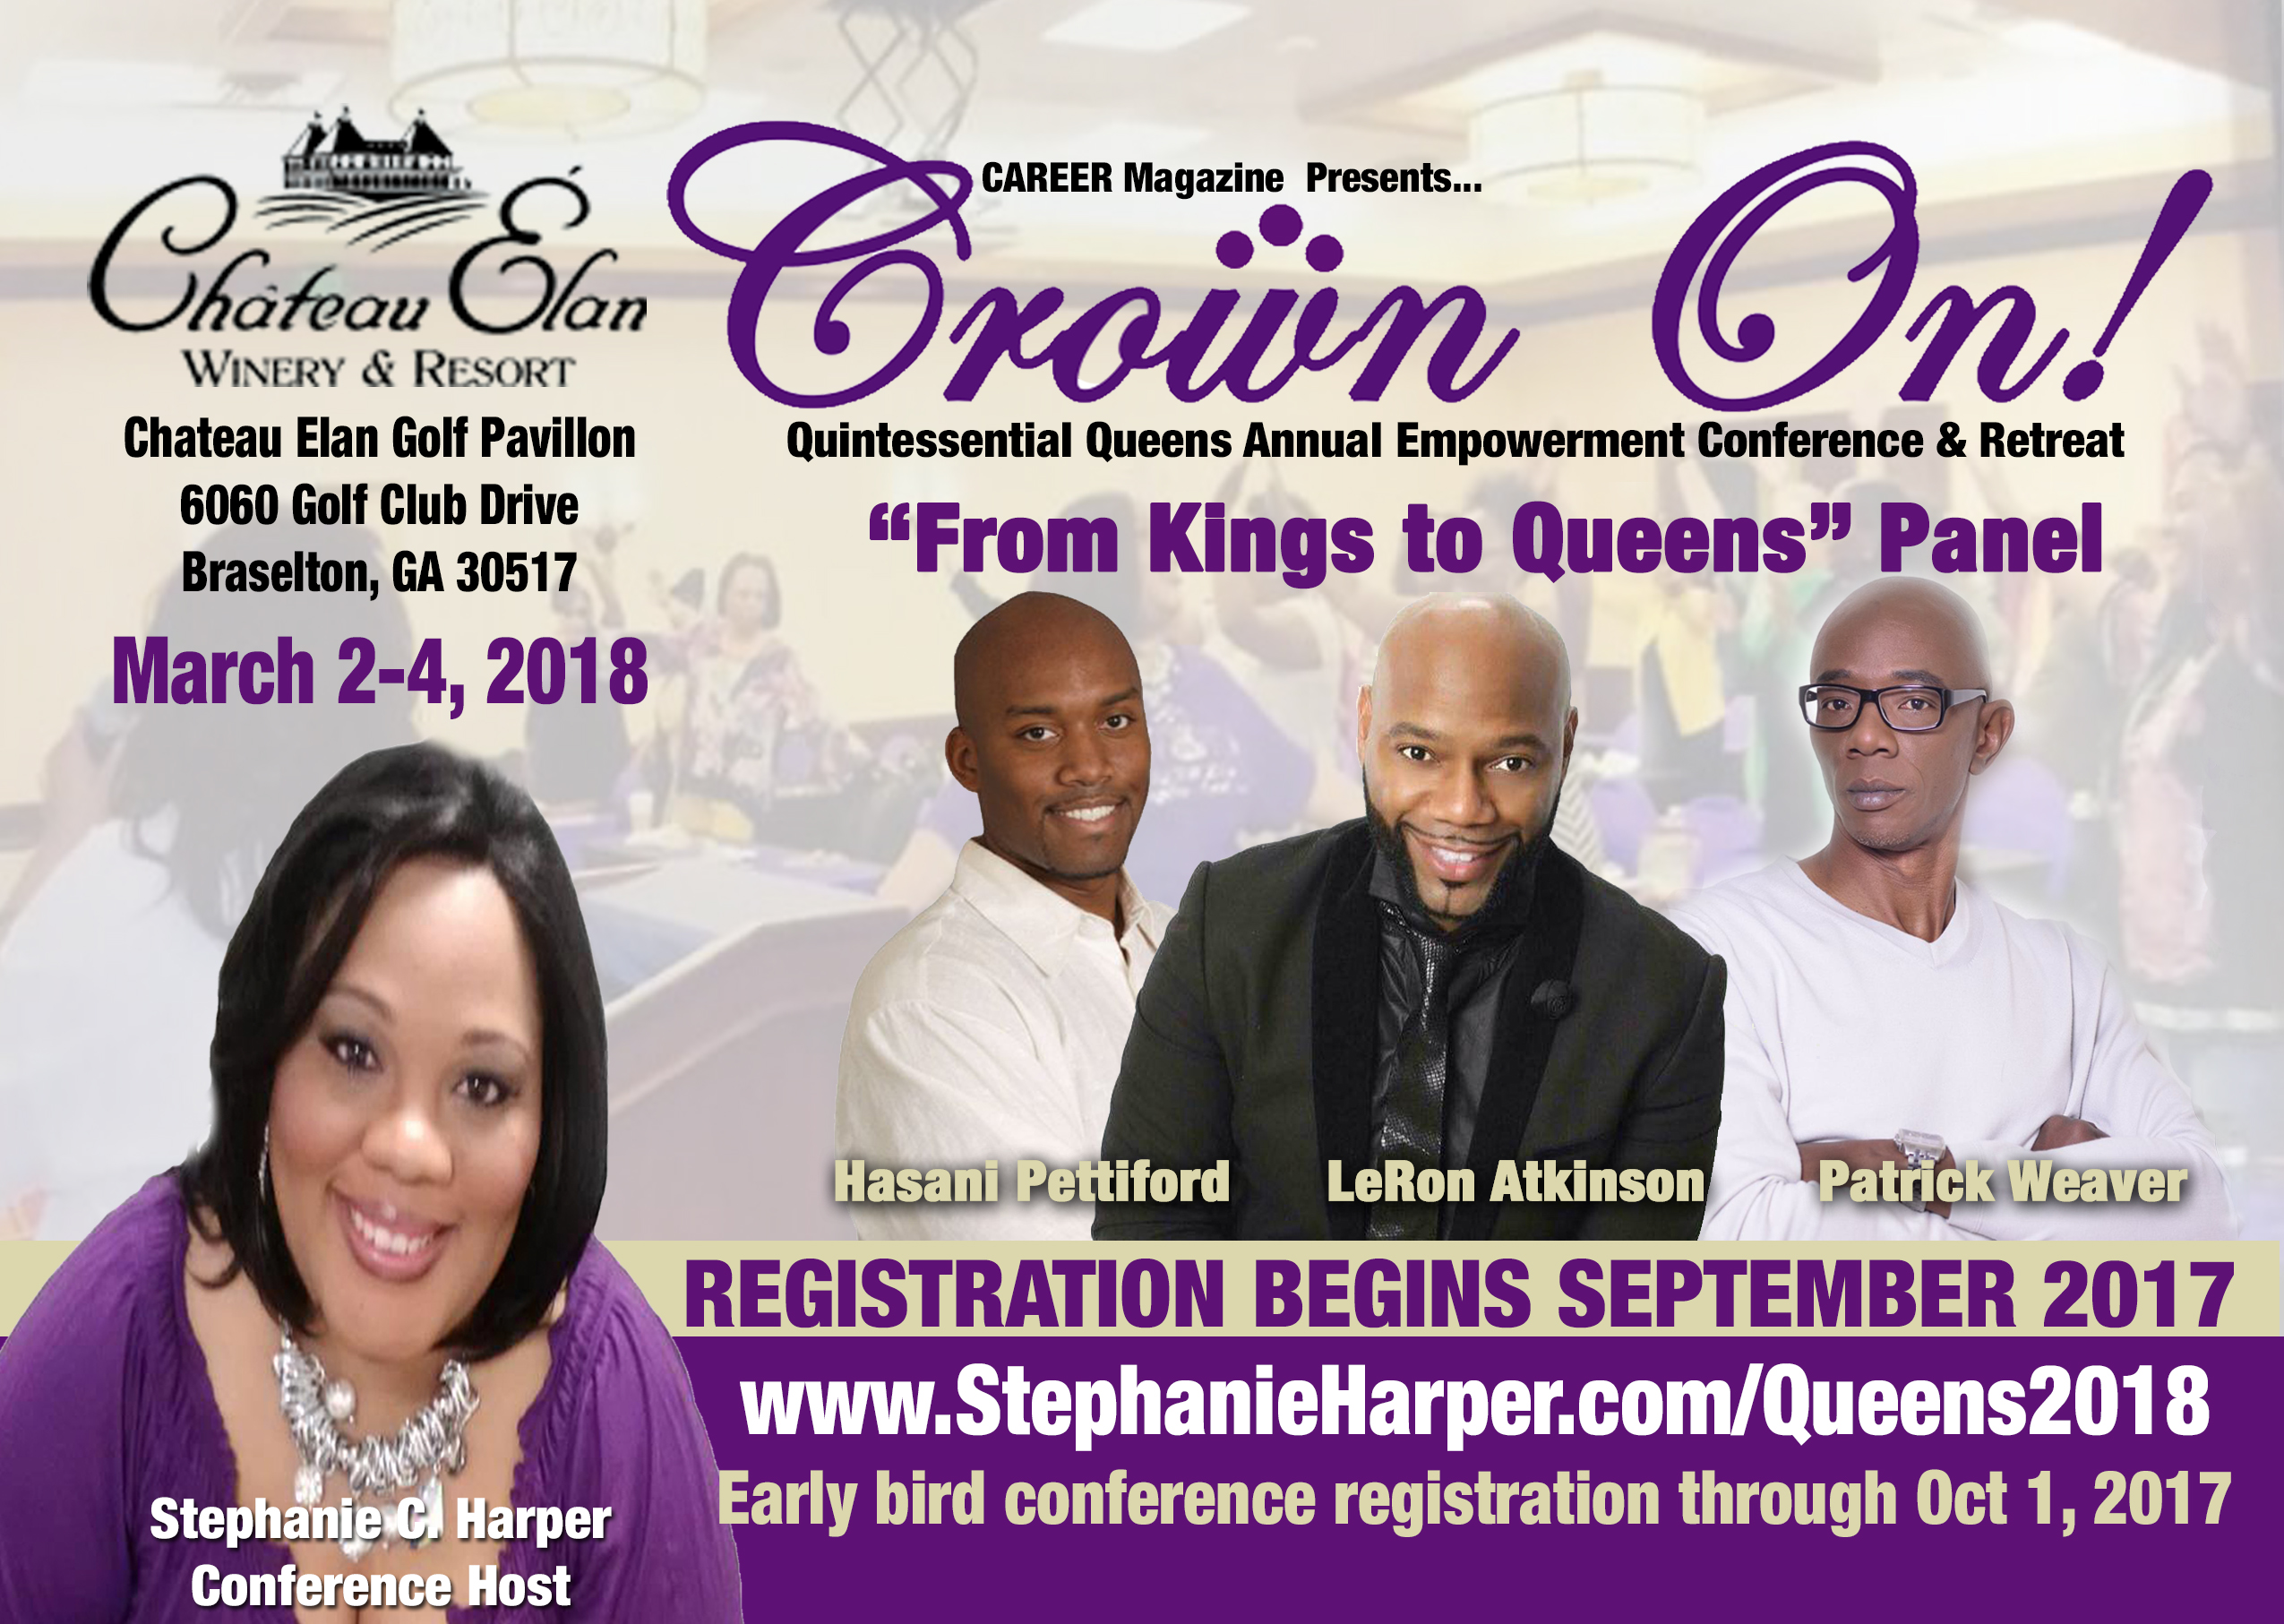 Queens 2018 stephanie c harper phr ccp chrm certified human our speaker section will be updated as speaker schedules are confirmed but out kings panel is royally solid xflitez Choice Image